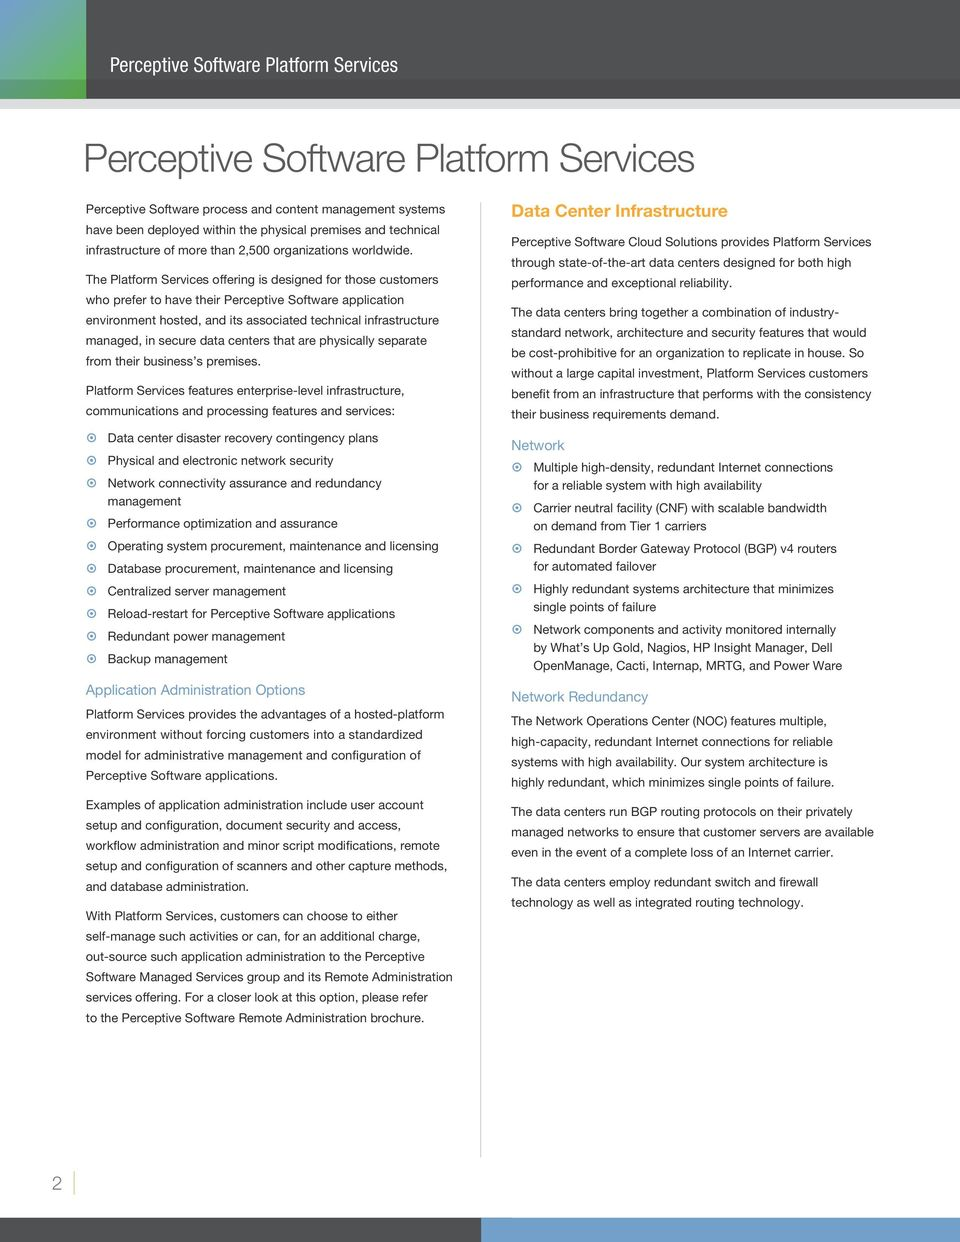 The Platform Services offering is designed for those customers who prefer to have their Perceptive Software application environment hosted, and its associated technical infrastructure managed, in